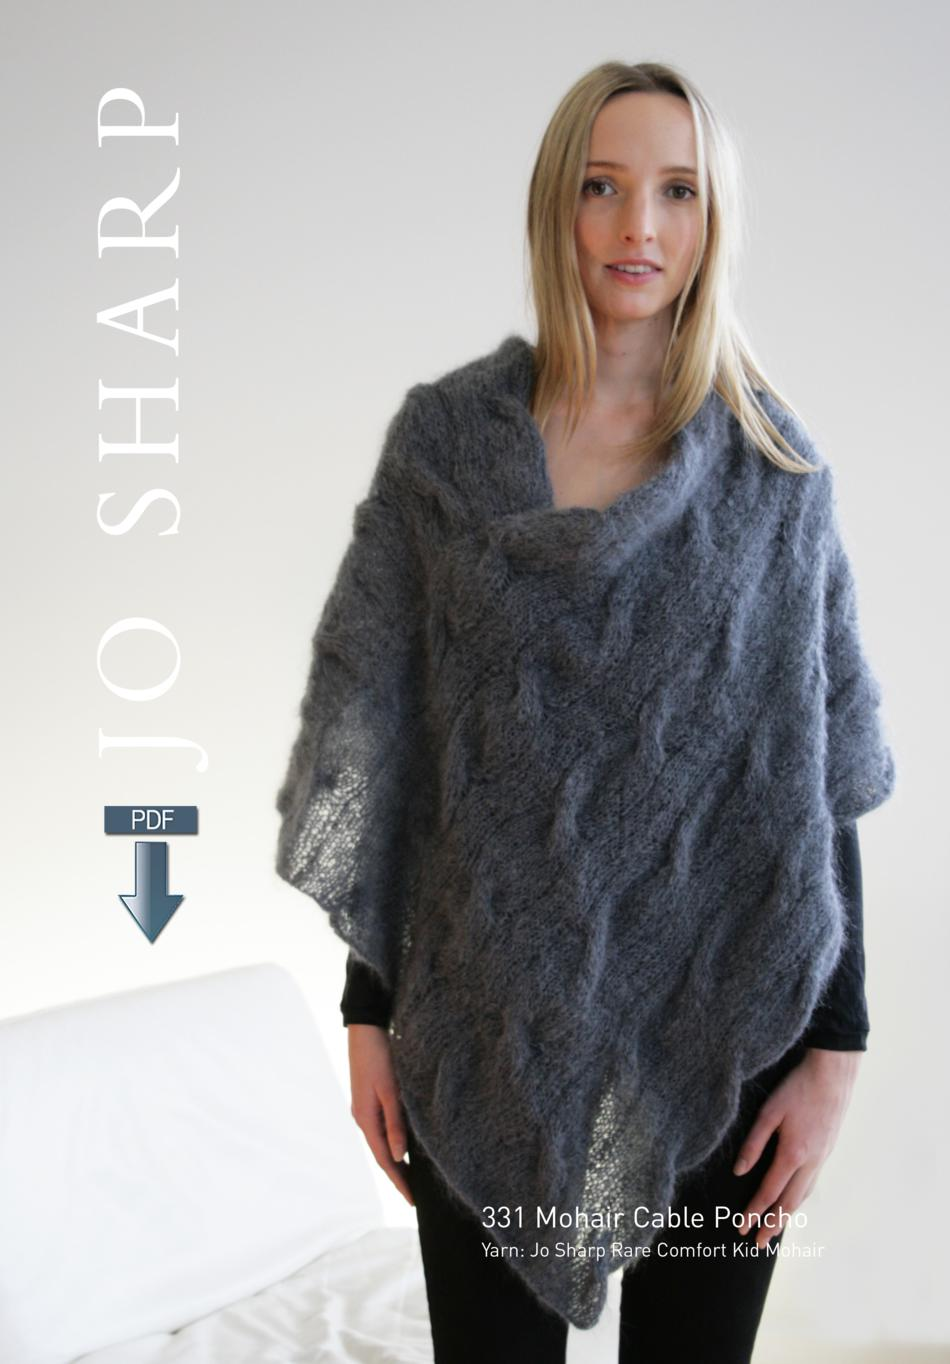 Jo Sharp Mohair Cable Poncho Pattern Pattern Download Knitting